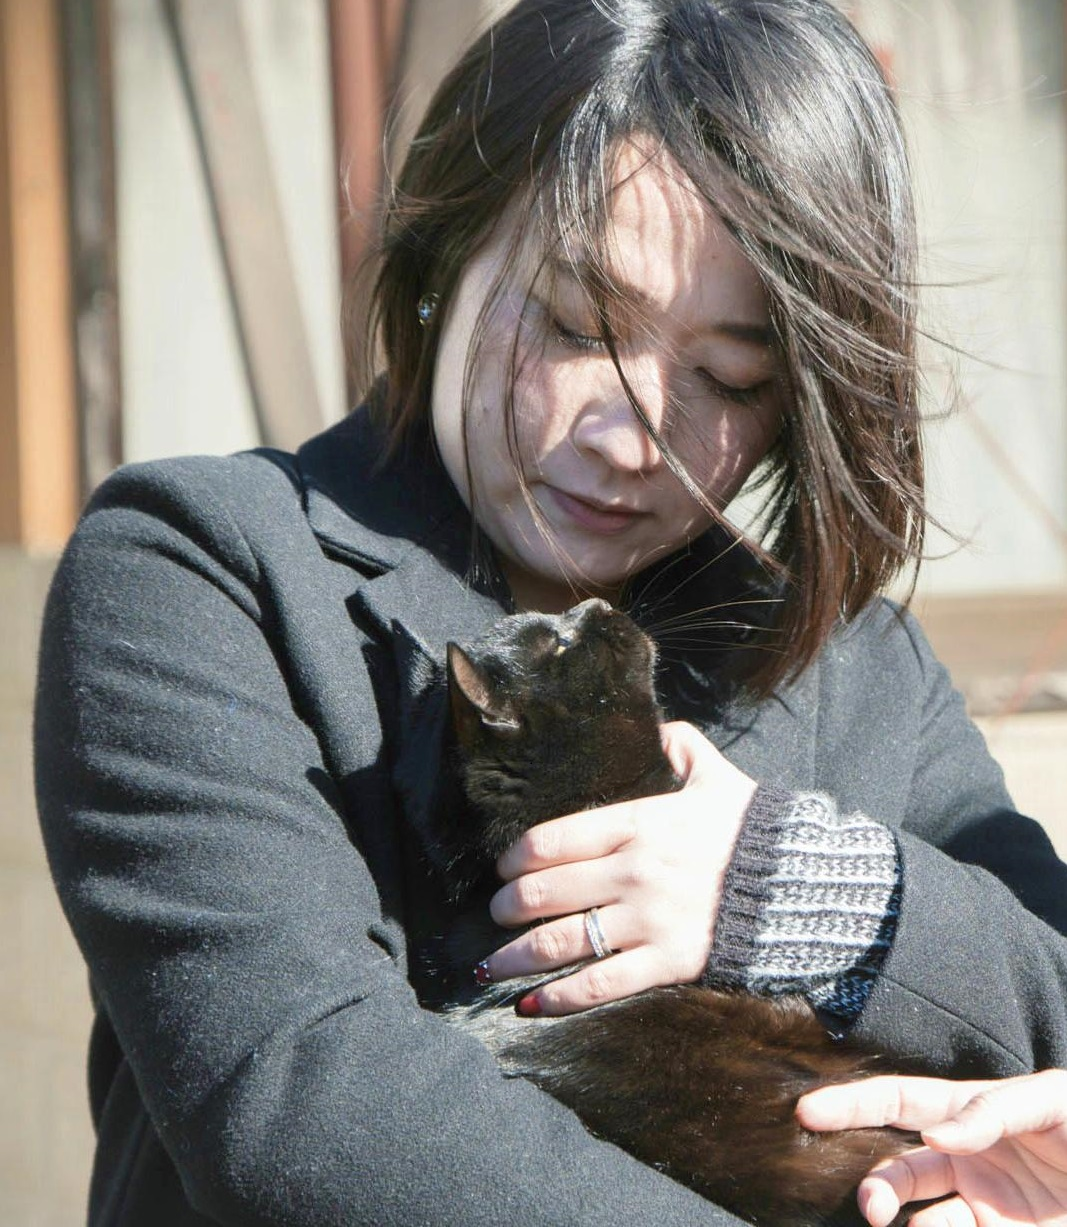 aichi girl s essay on rampant cheap killing of stray cats spurs writer makoto tozuka holds a stray cat in toyohashi aichi prefecture in